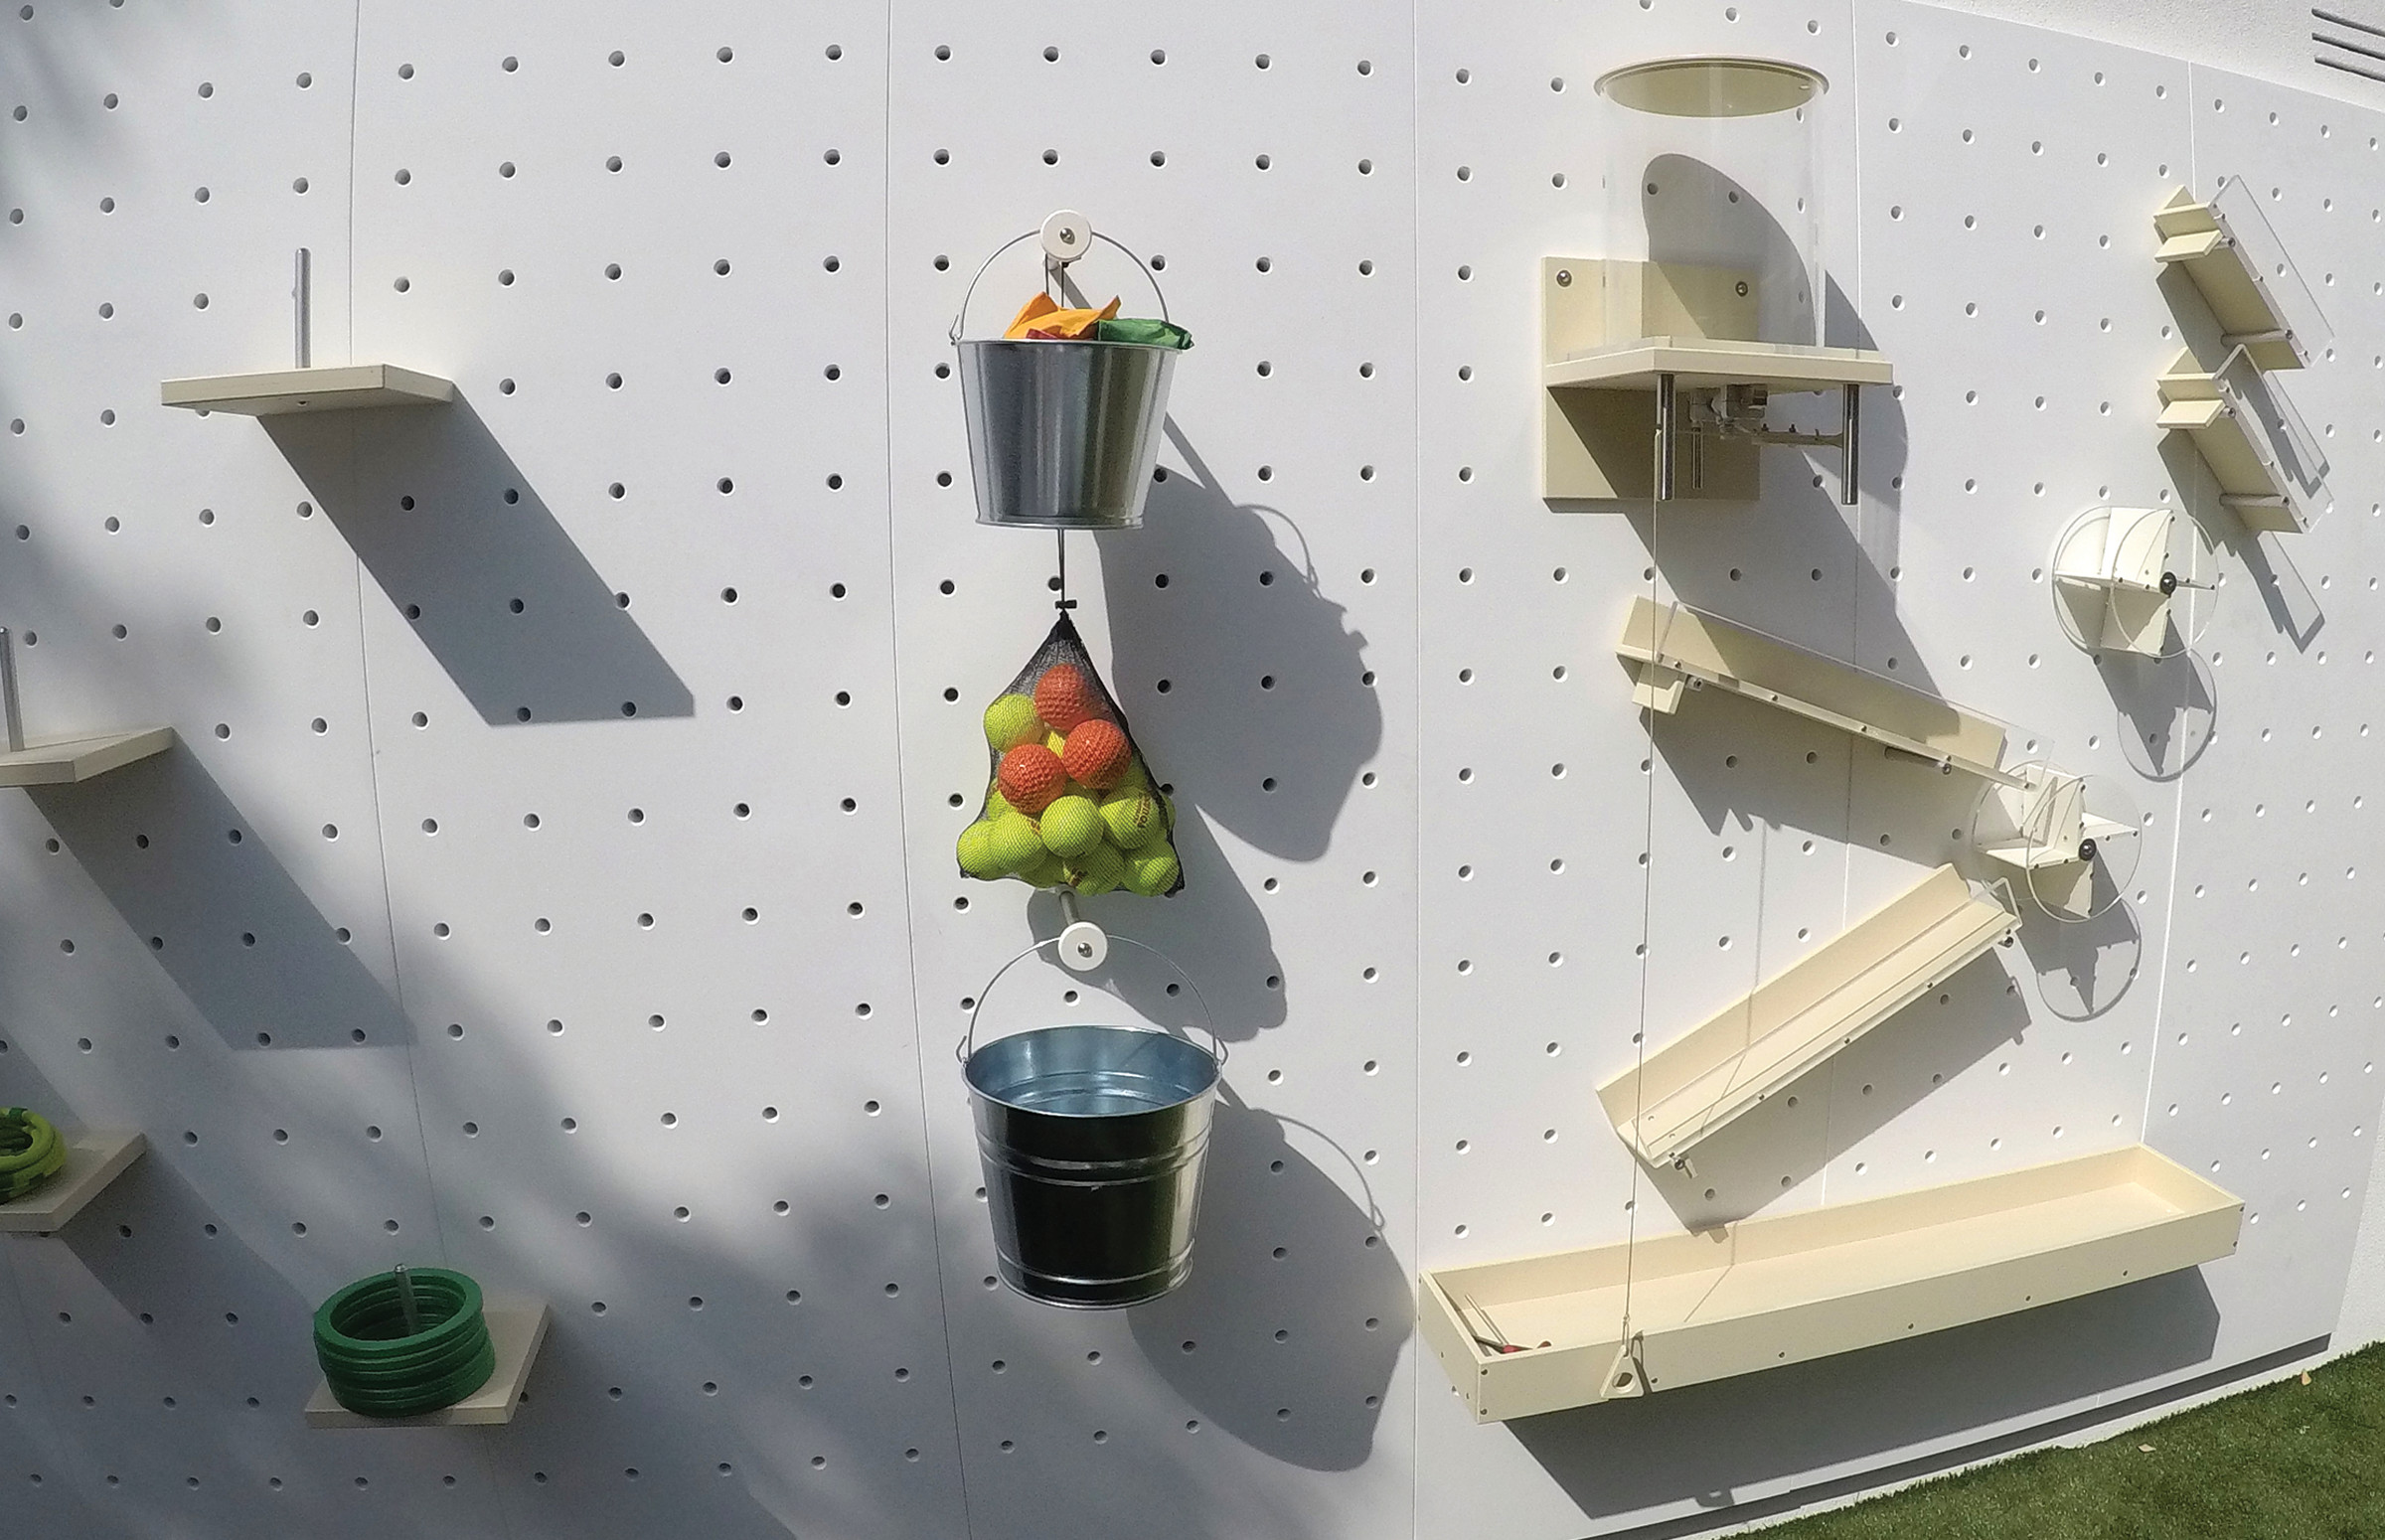 pegboard-pegwall-mywall-outdoor-thinkterior.jpg